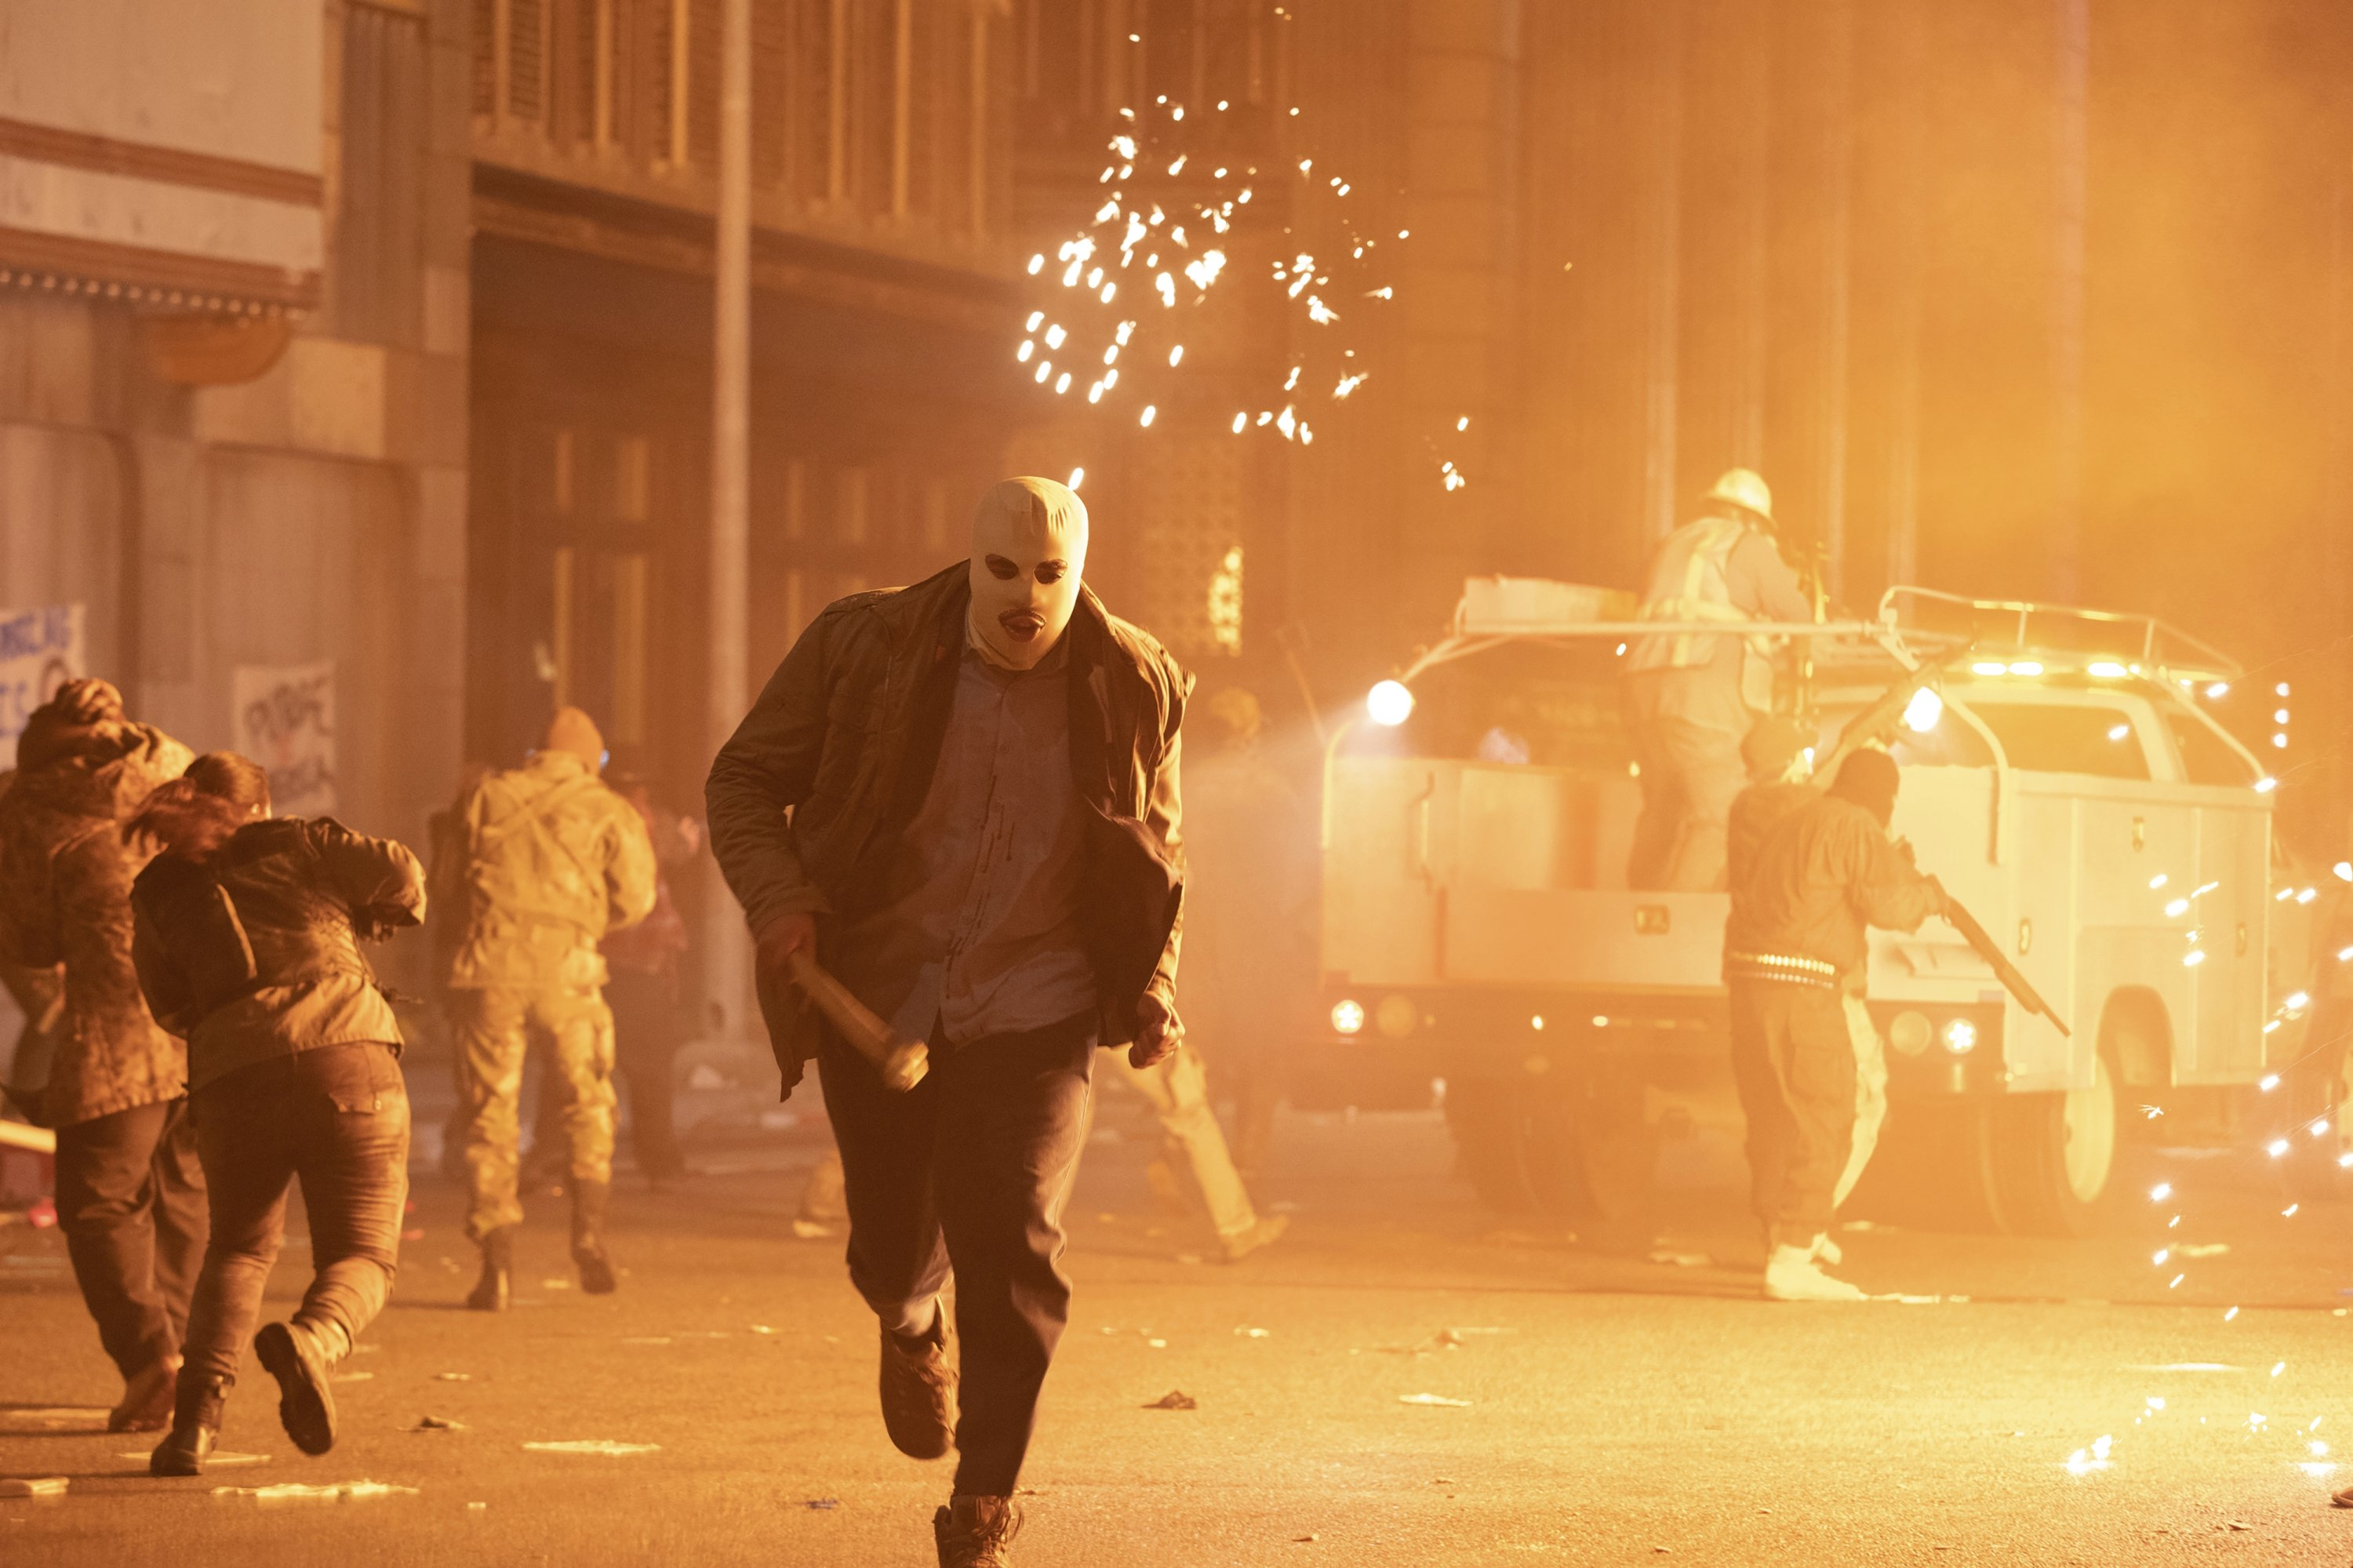 A scene from 'The Forever Purge,' directed by Everardo Valerio Gout. (Universal Pictures via AP)